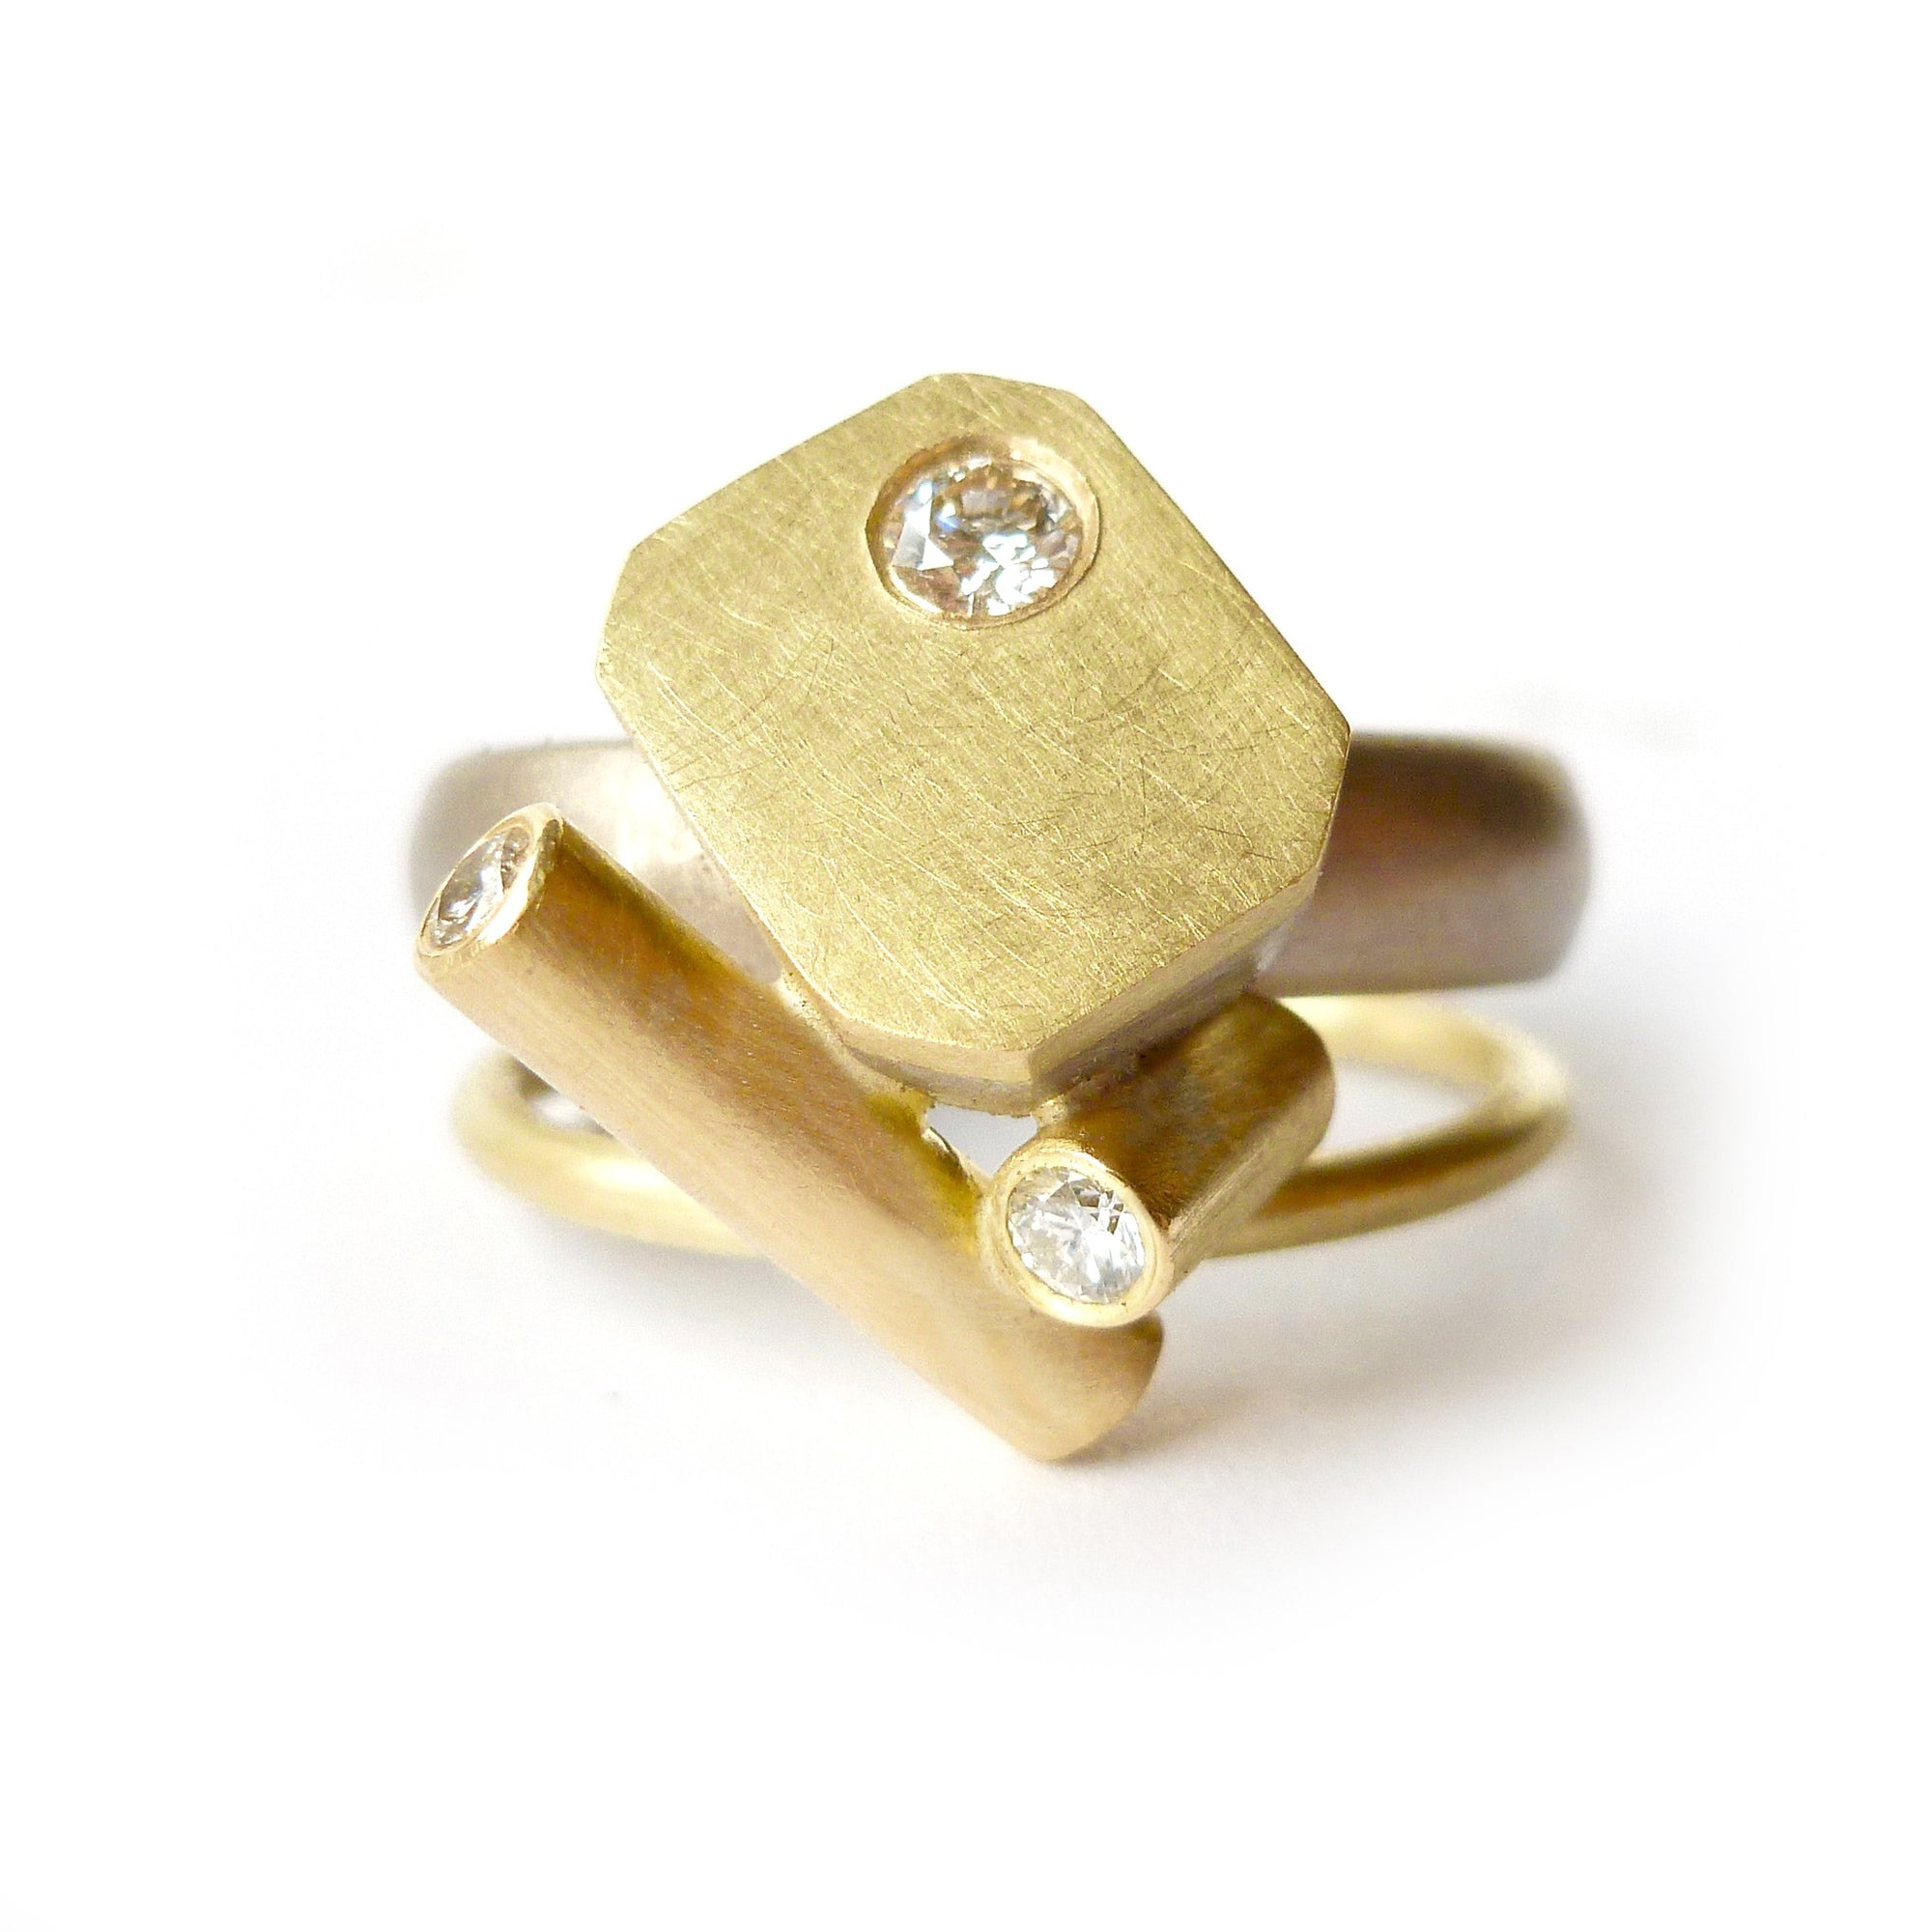 statement gold and diamond dress or cocktail ring